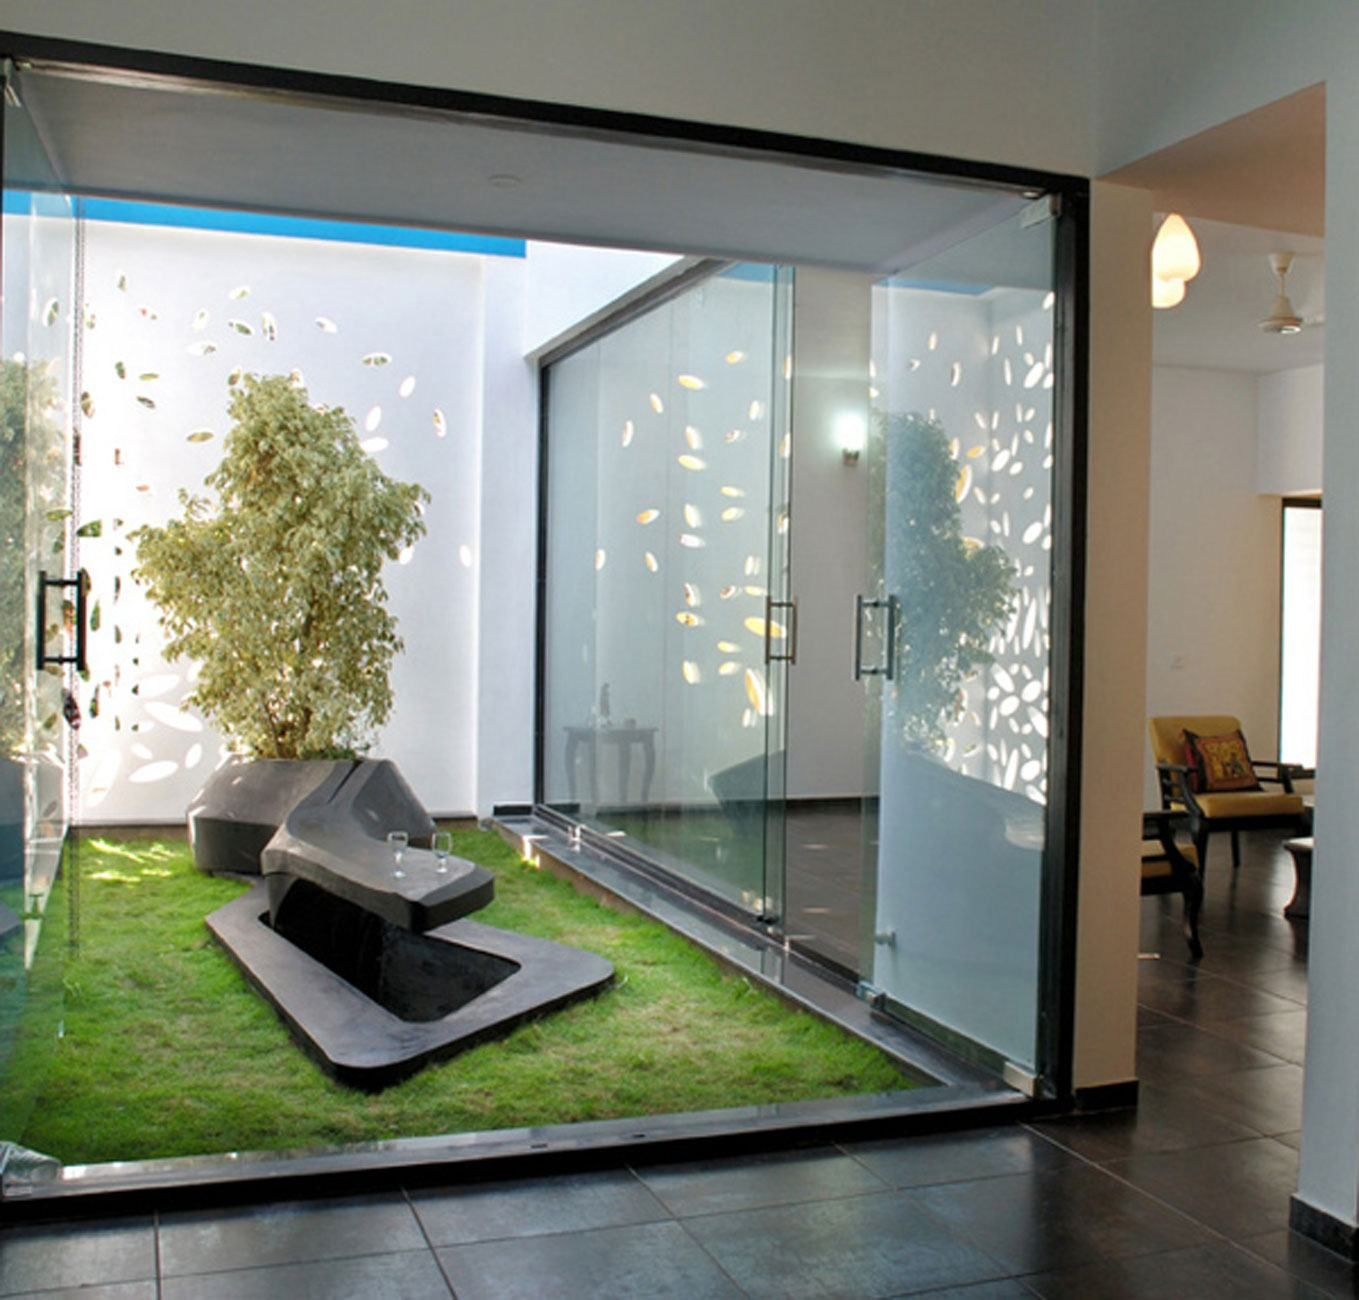 Amazing Interior Design home designs gallery amazing interior garden with modern glazed